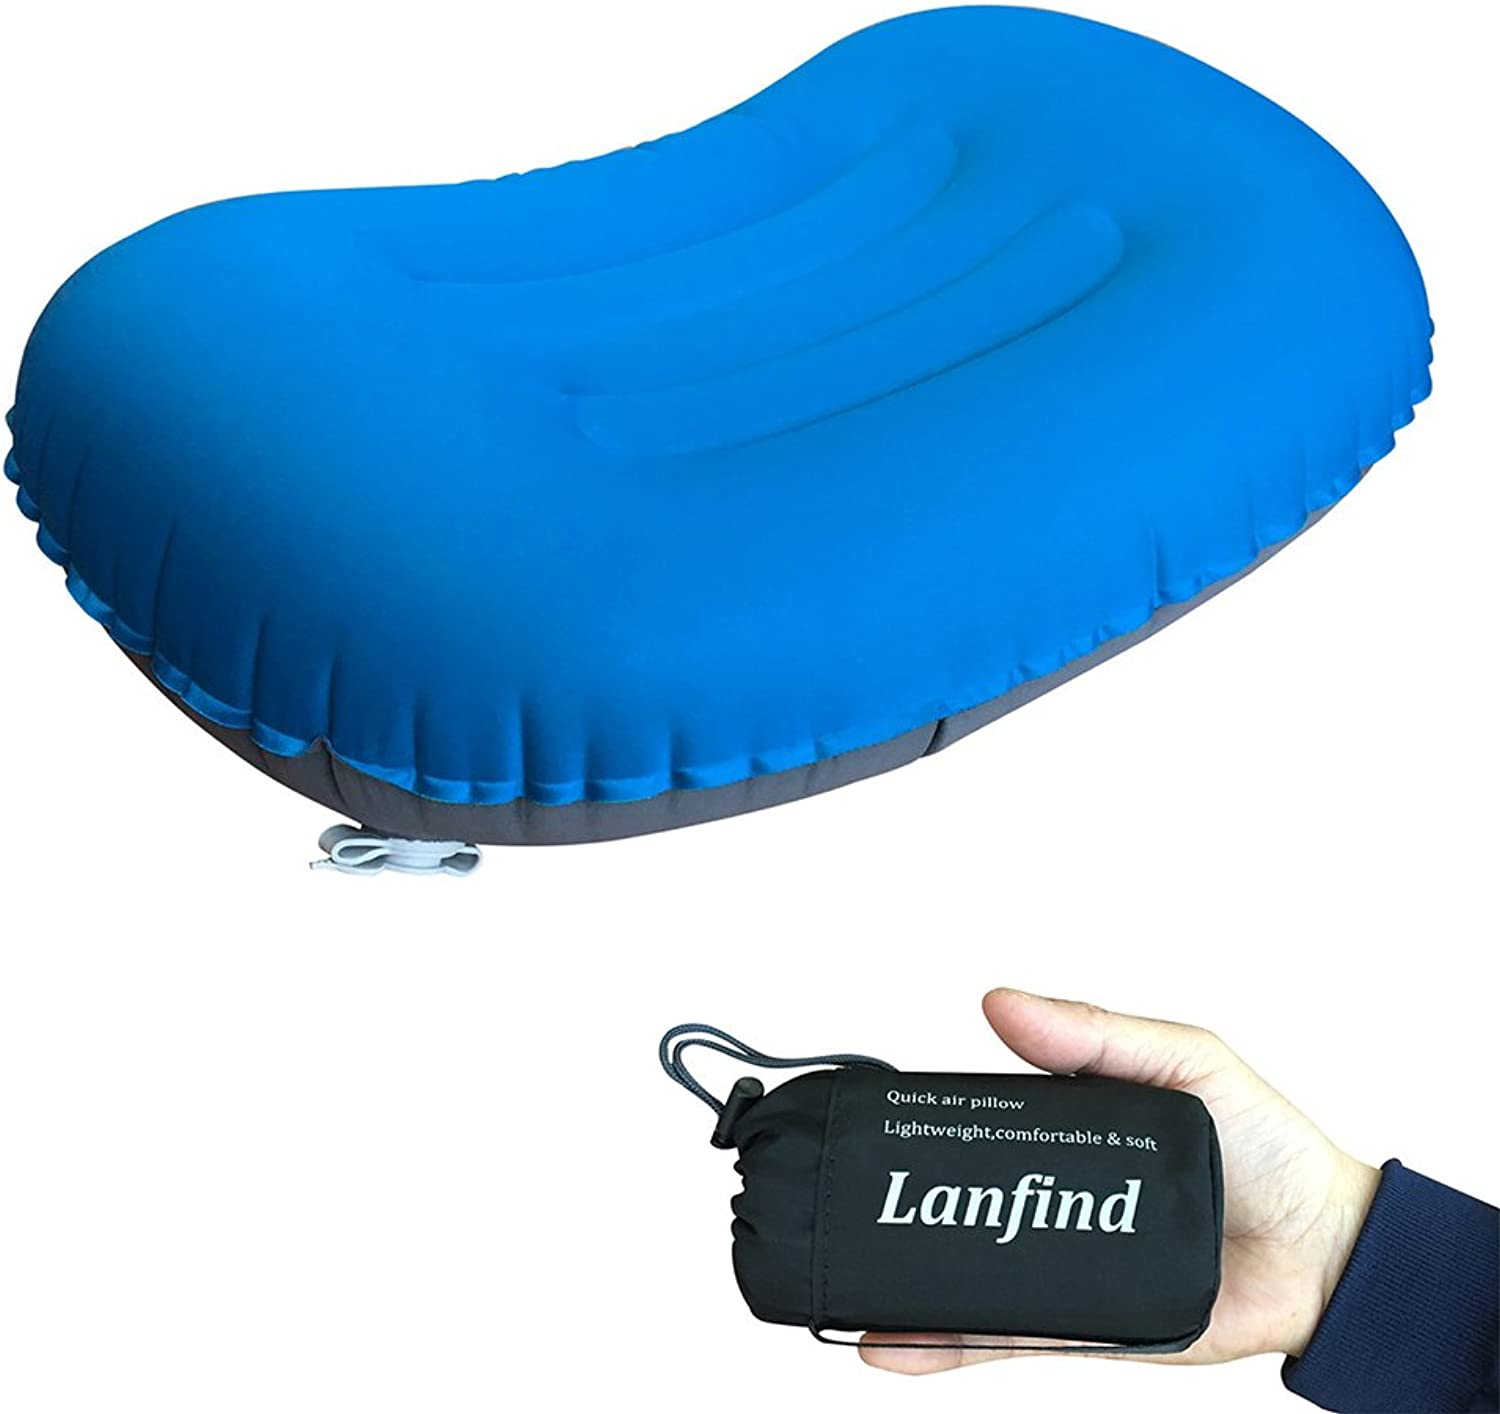 LANFIND Inflatable Pillow for Camping Hiking Travel Comfortable Lightweight Compressible Pillow for Neck & Lumbar Support (blueee)